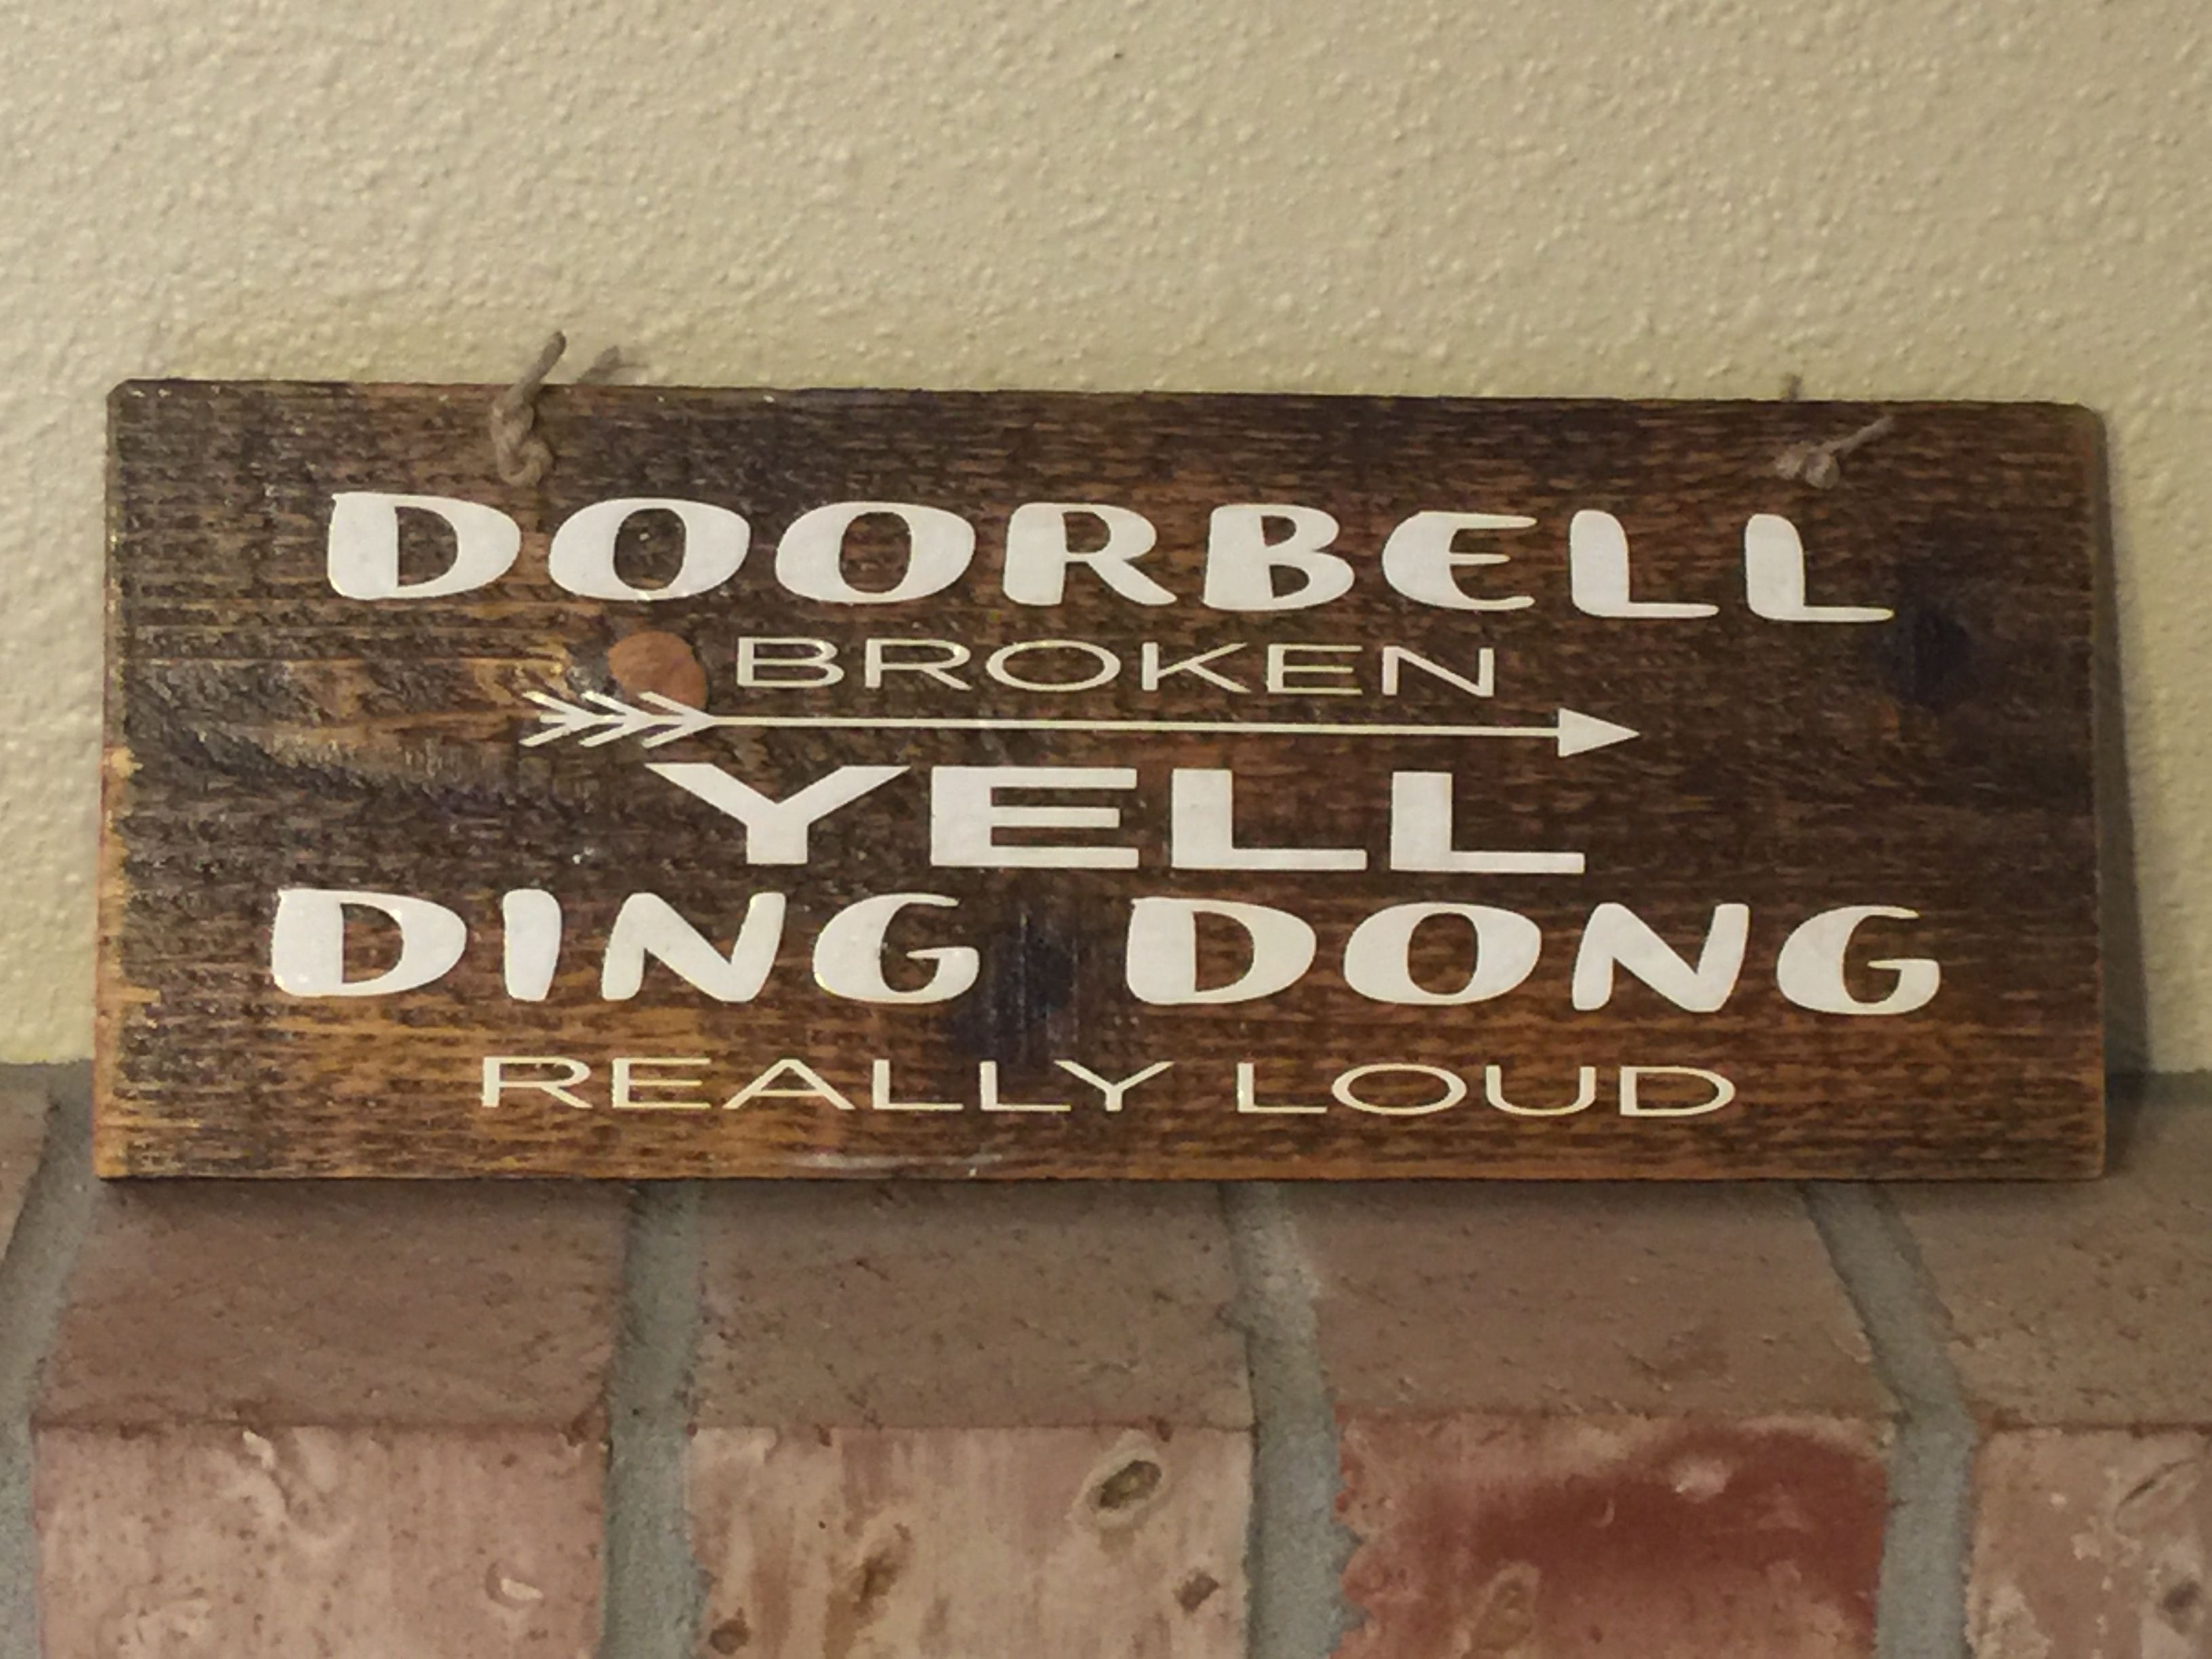 Funny Welcome Sign Rustic Reclaimed Wood Doorbell Broken Yell Ding Dong Really Loud Country Burlap Funny Welcome Signs Diy Wood Signs Carved Wood Signs